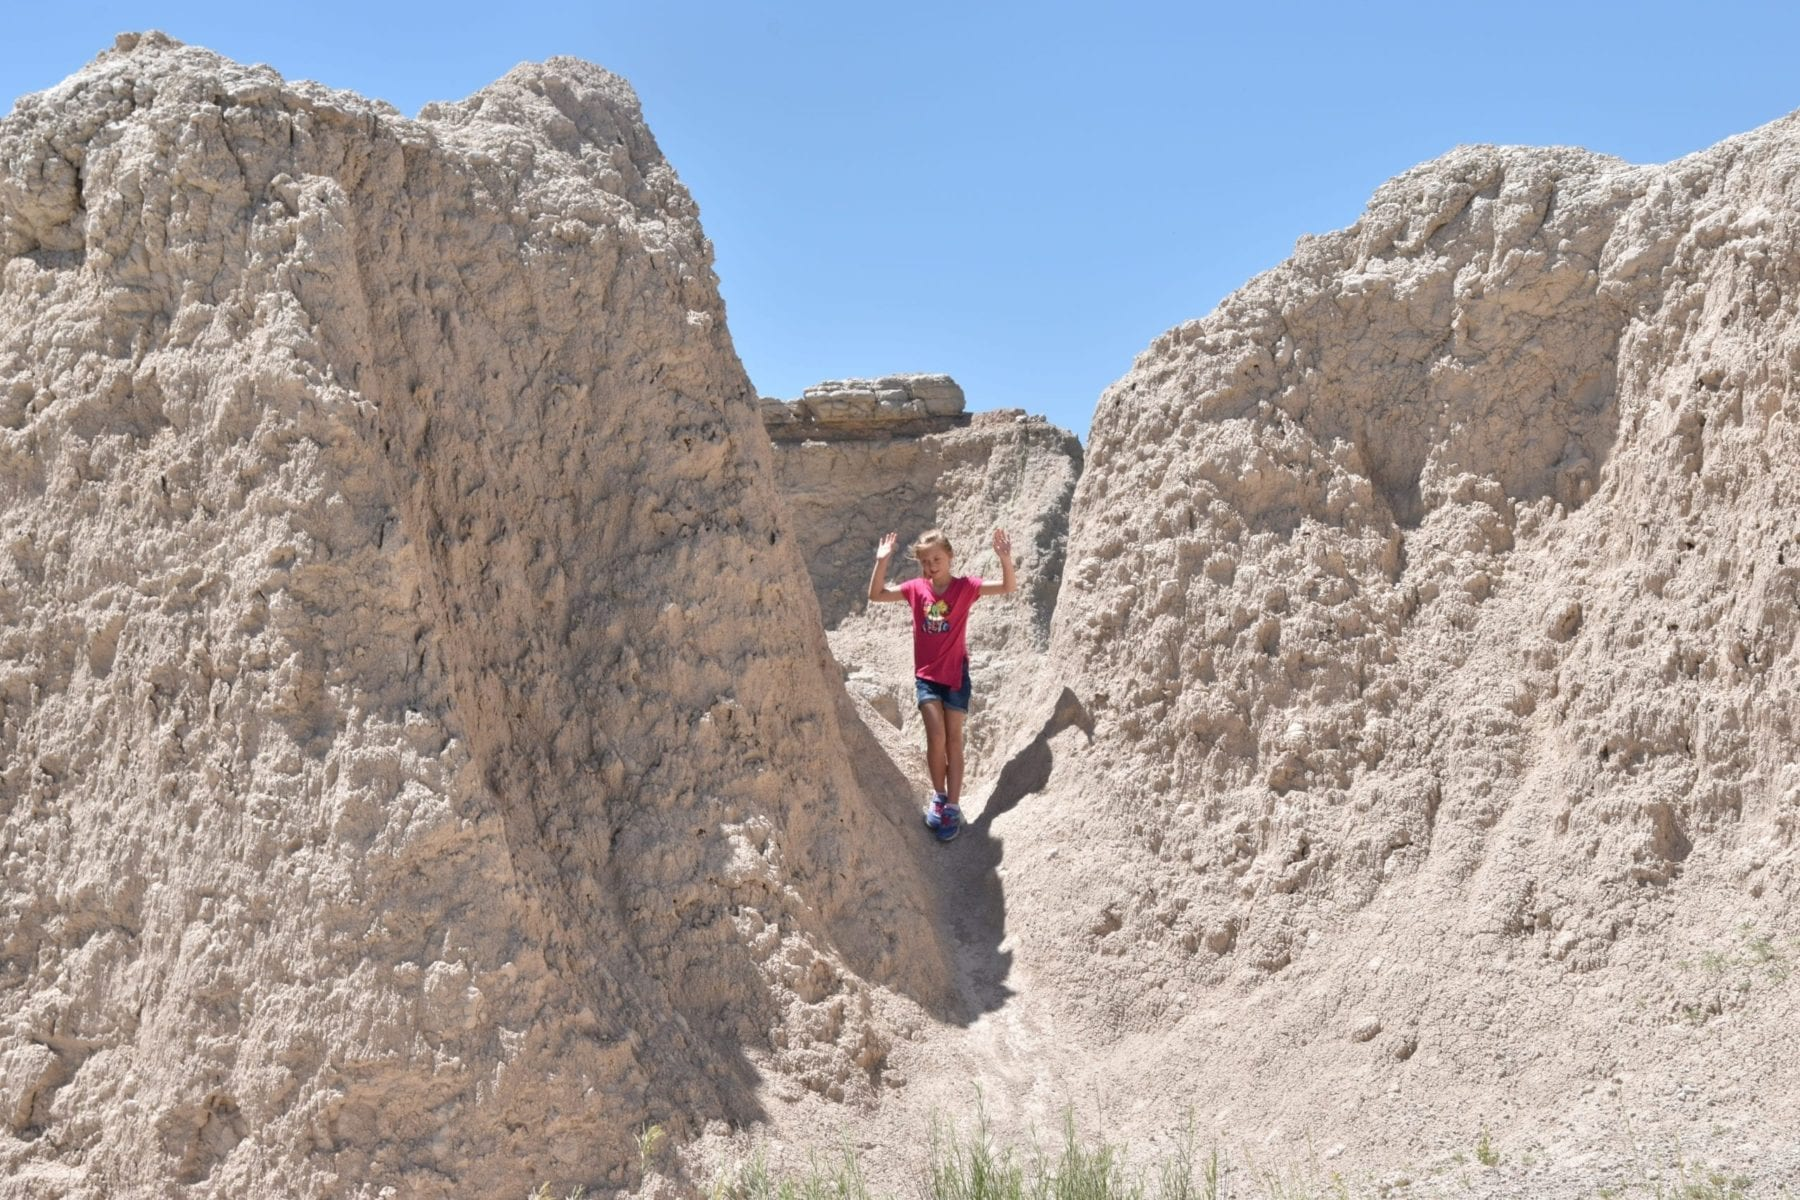 Hiking in the Badlands